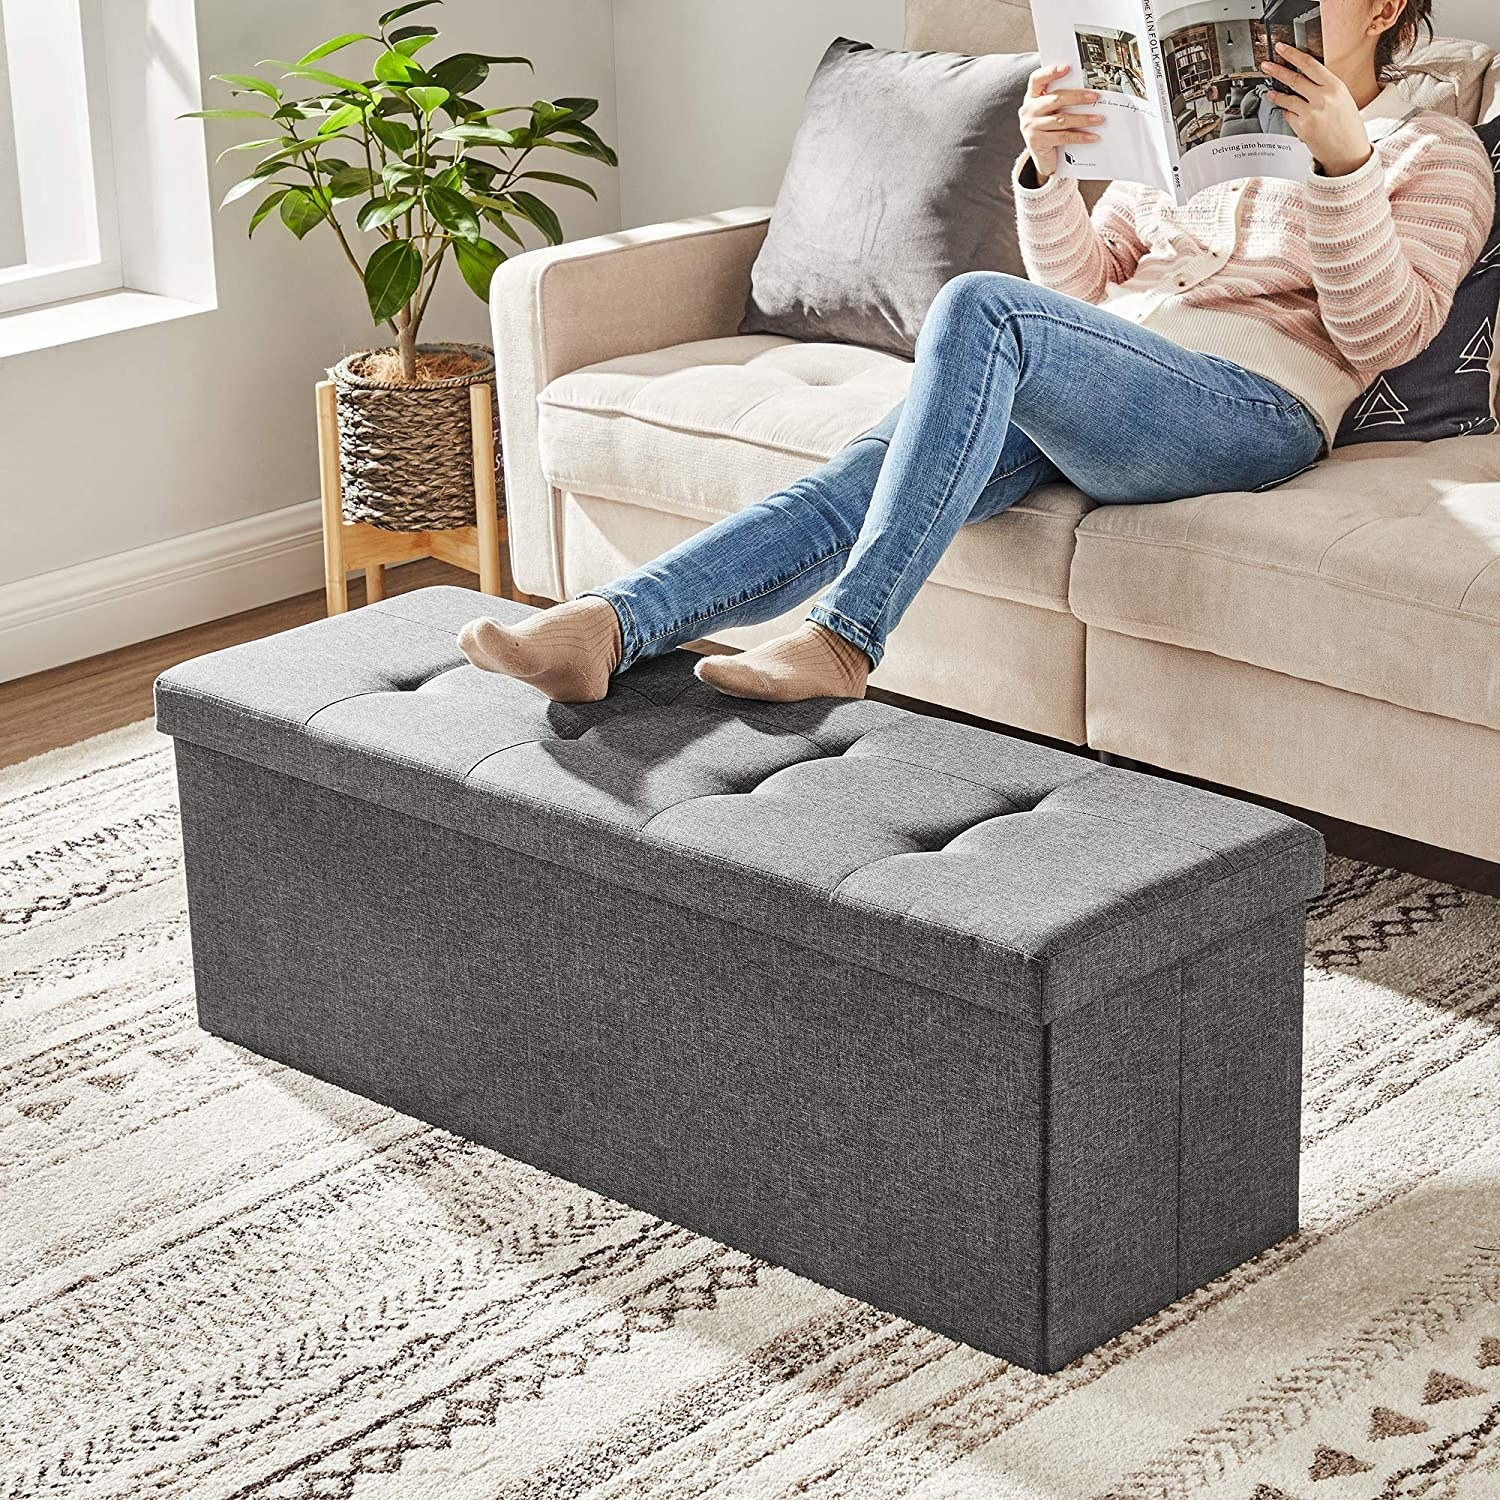 person sitting on couch reading with feet up on the long storage ottoman